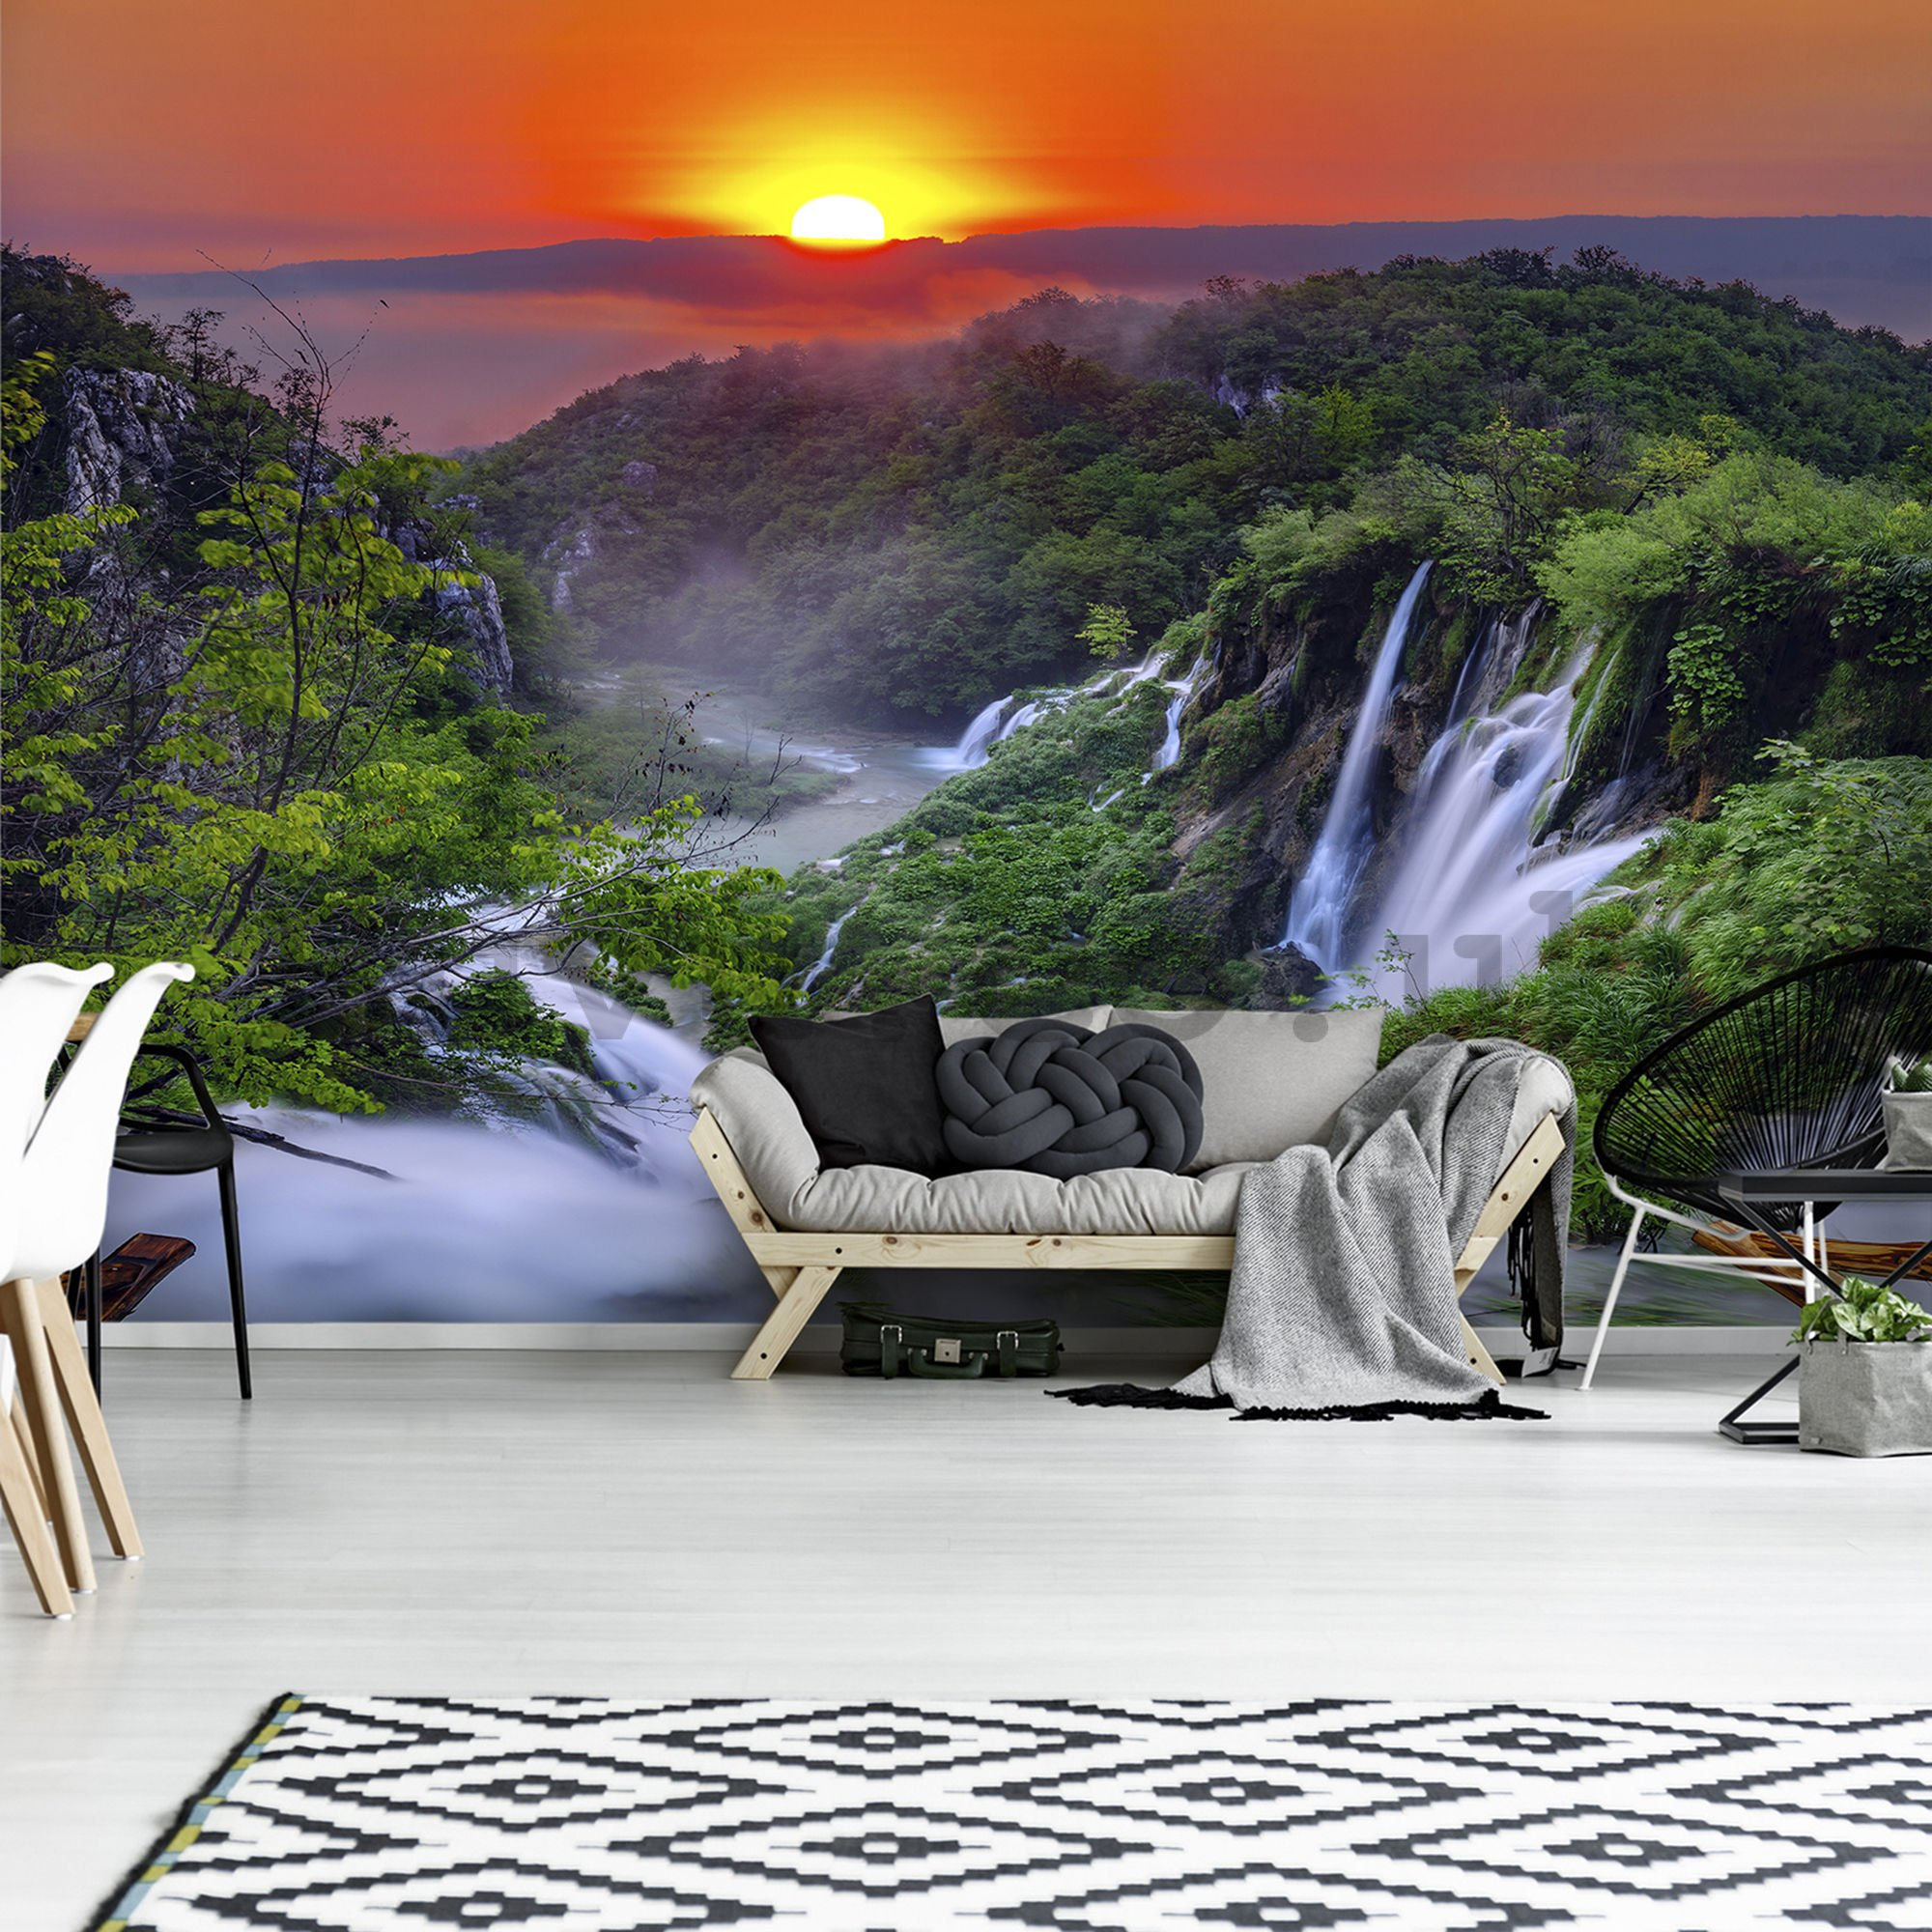 Wall mural vlies: Plitvice Lakes (sunrise) - 254x368 cm